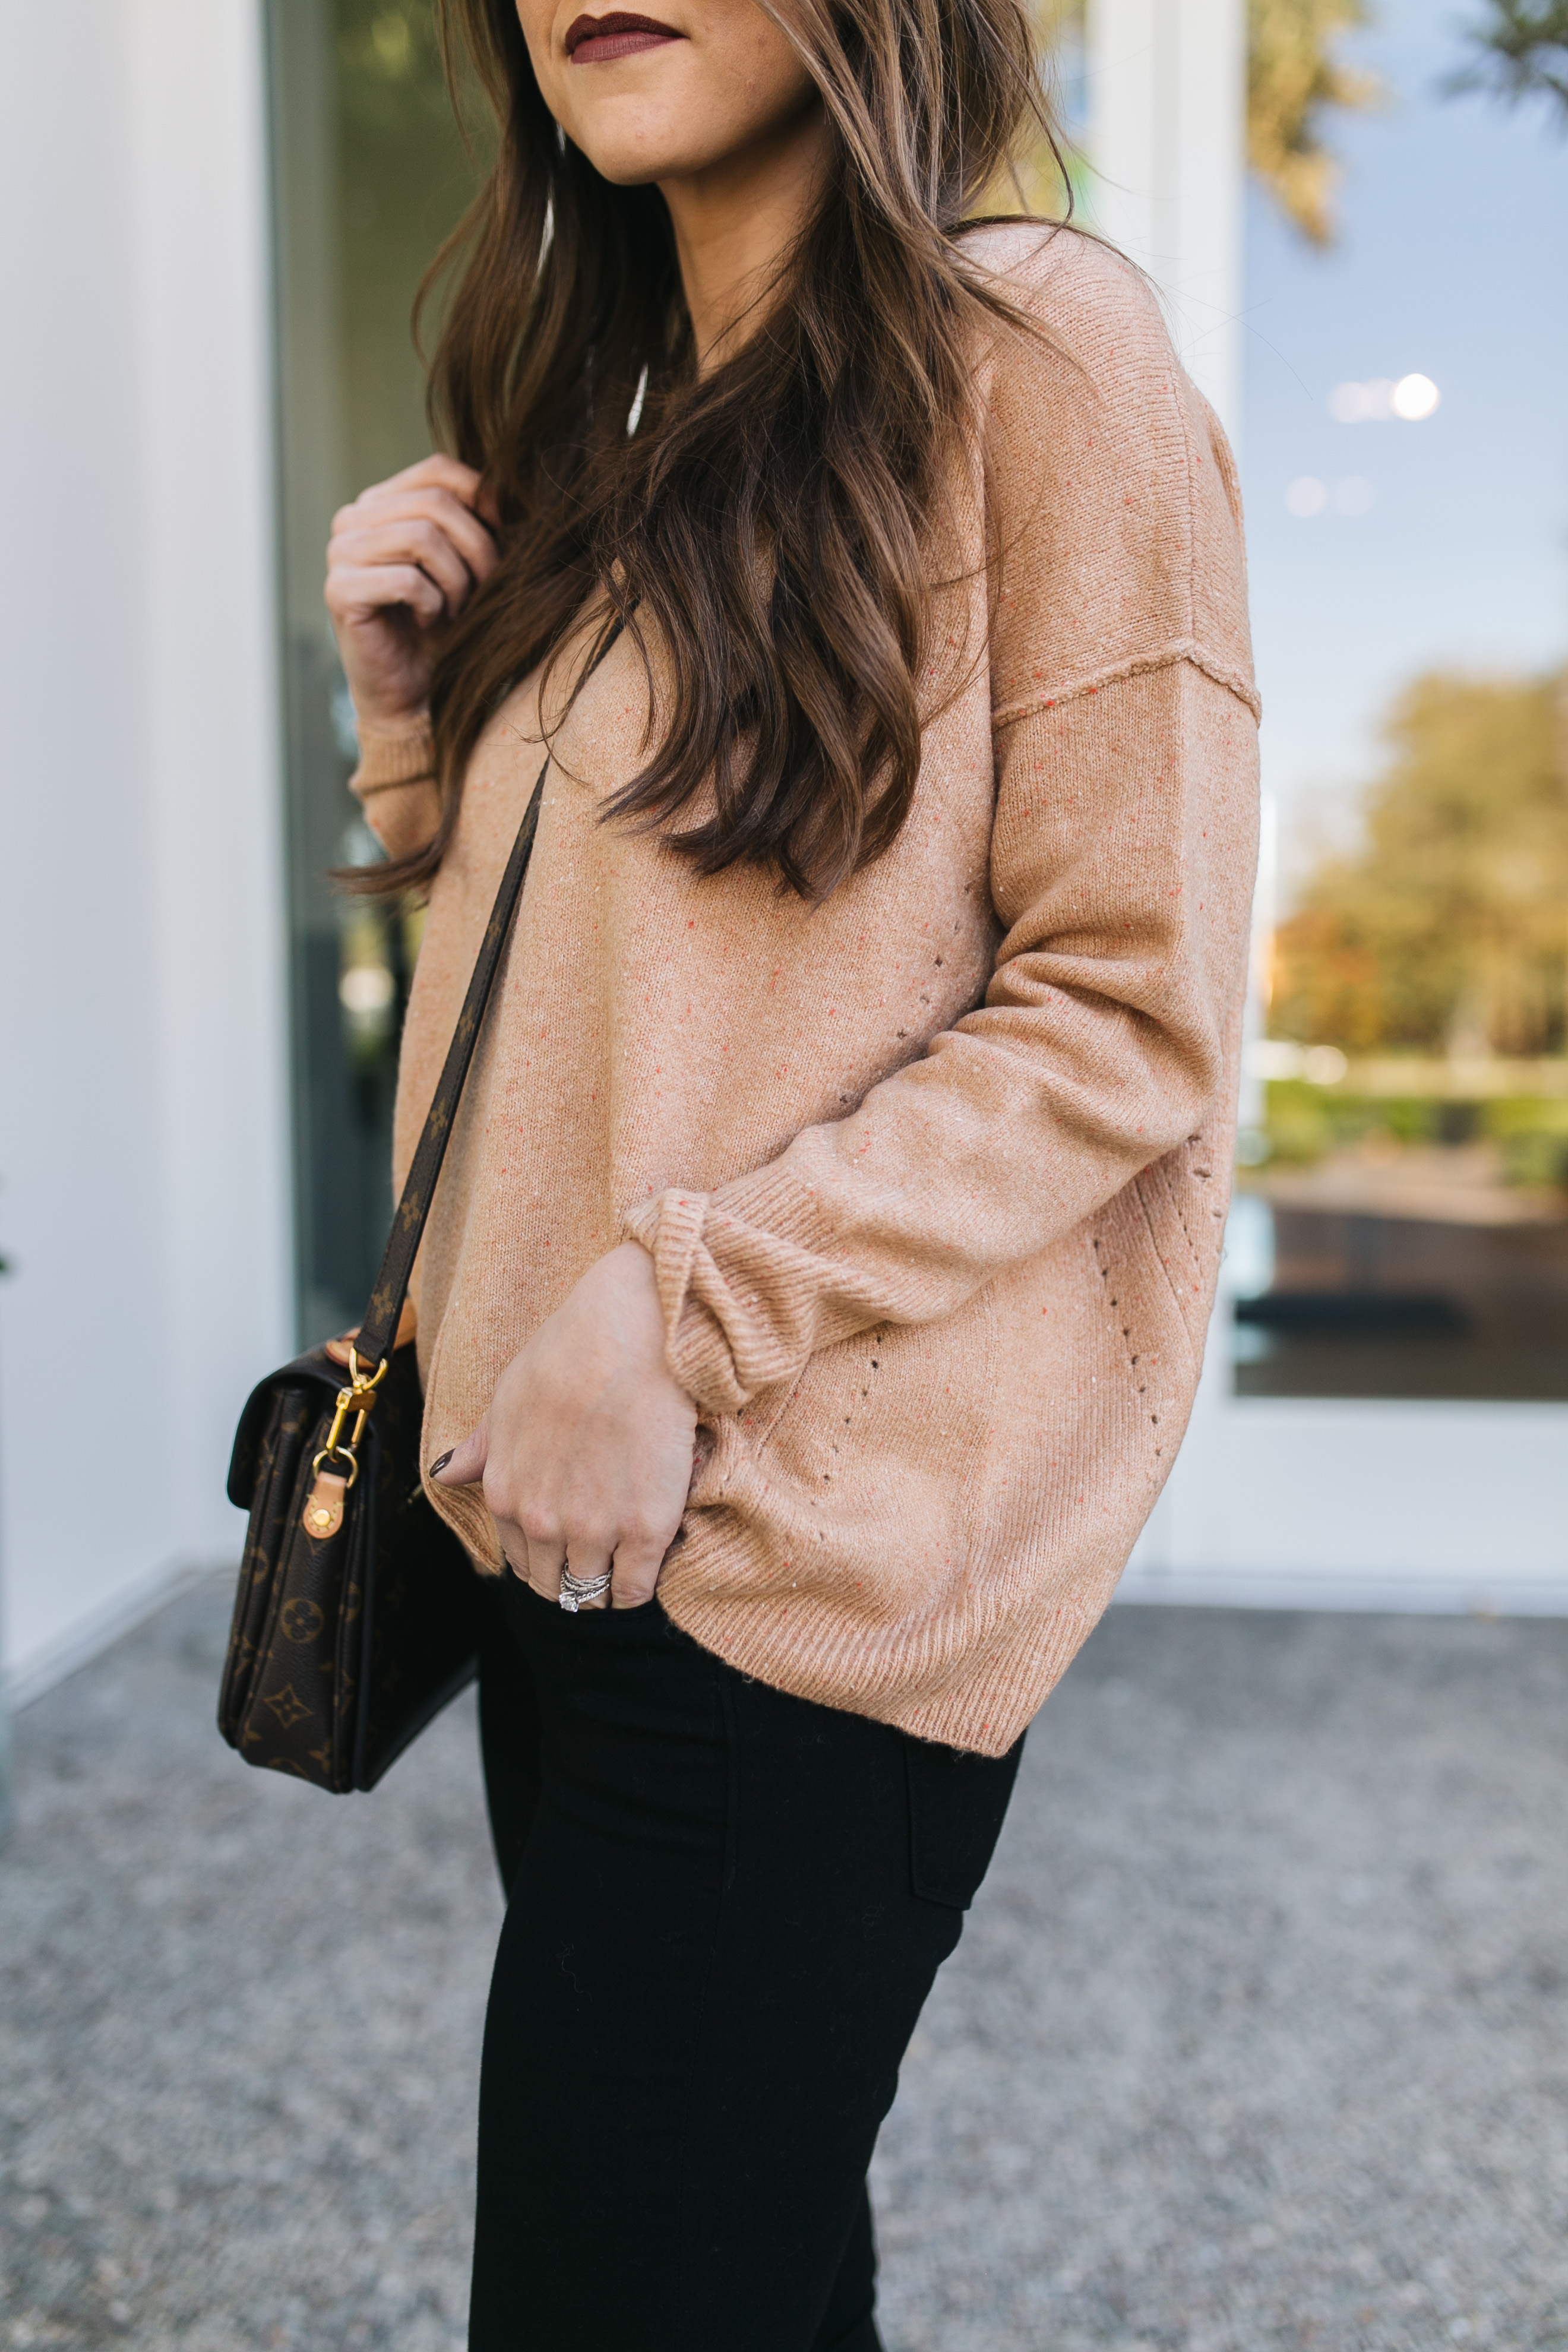 Fashion blogger Daryl-Ann Denner styles a Fall outfit with a Topshop camel sweater, black jeans, leopard flats, and louis vuitton bag